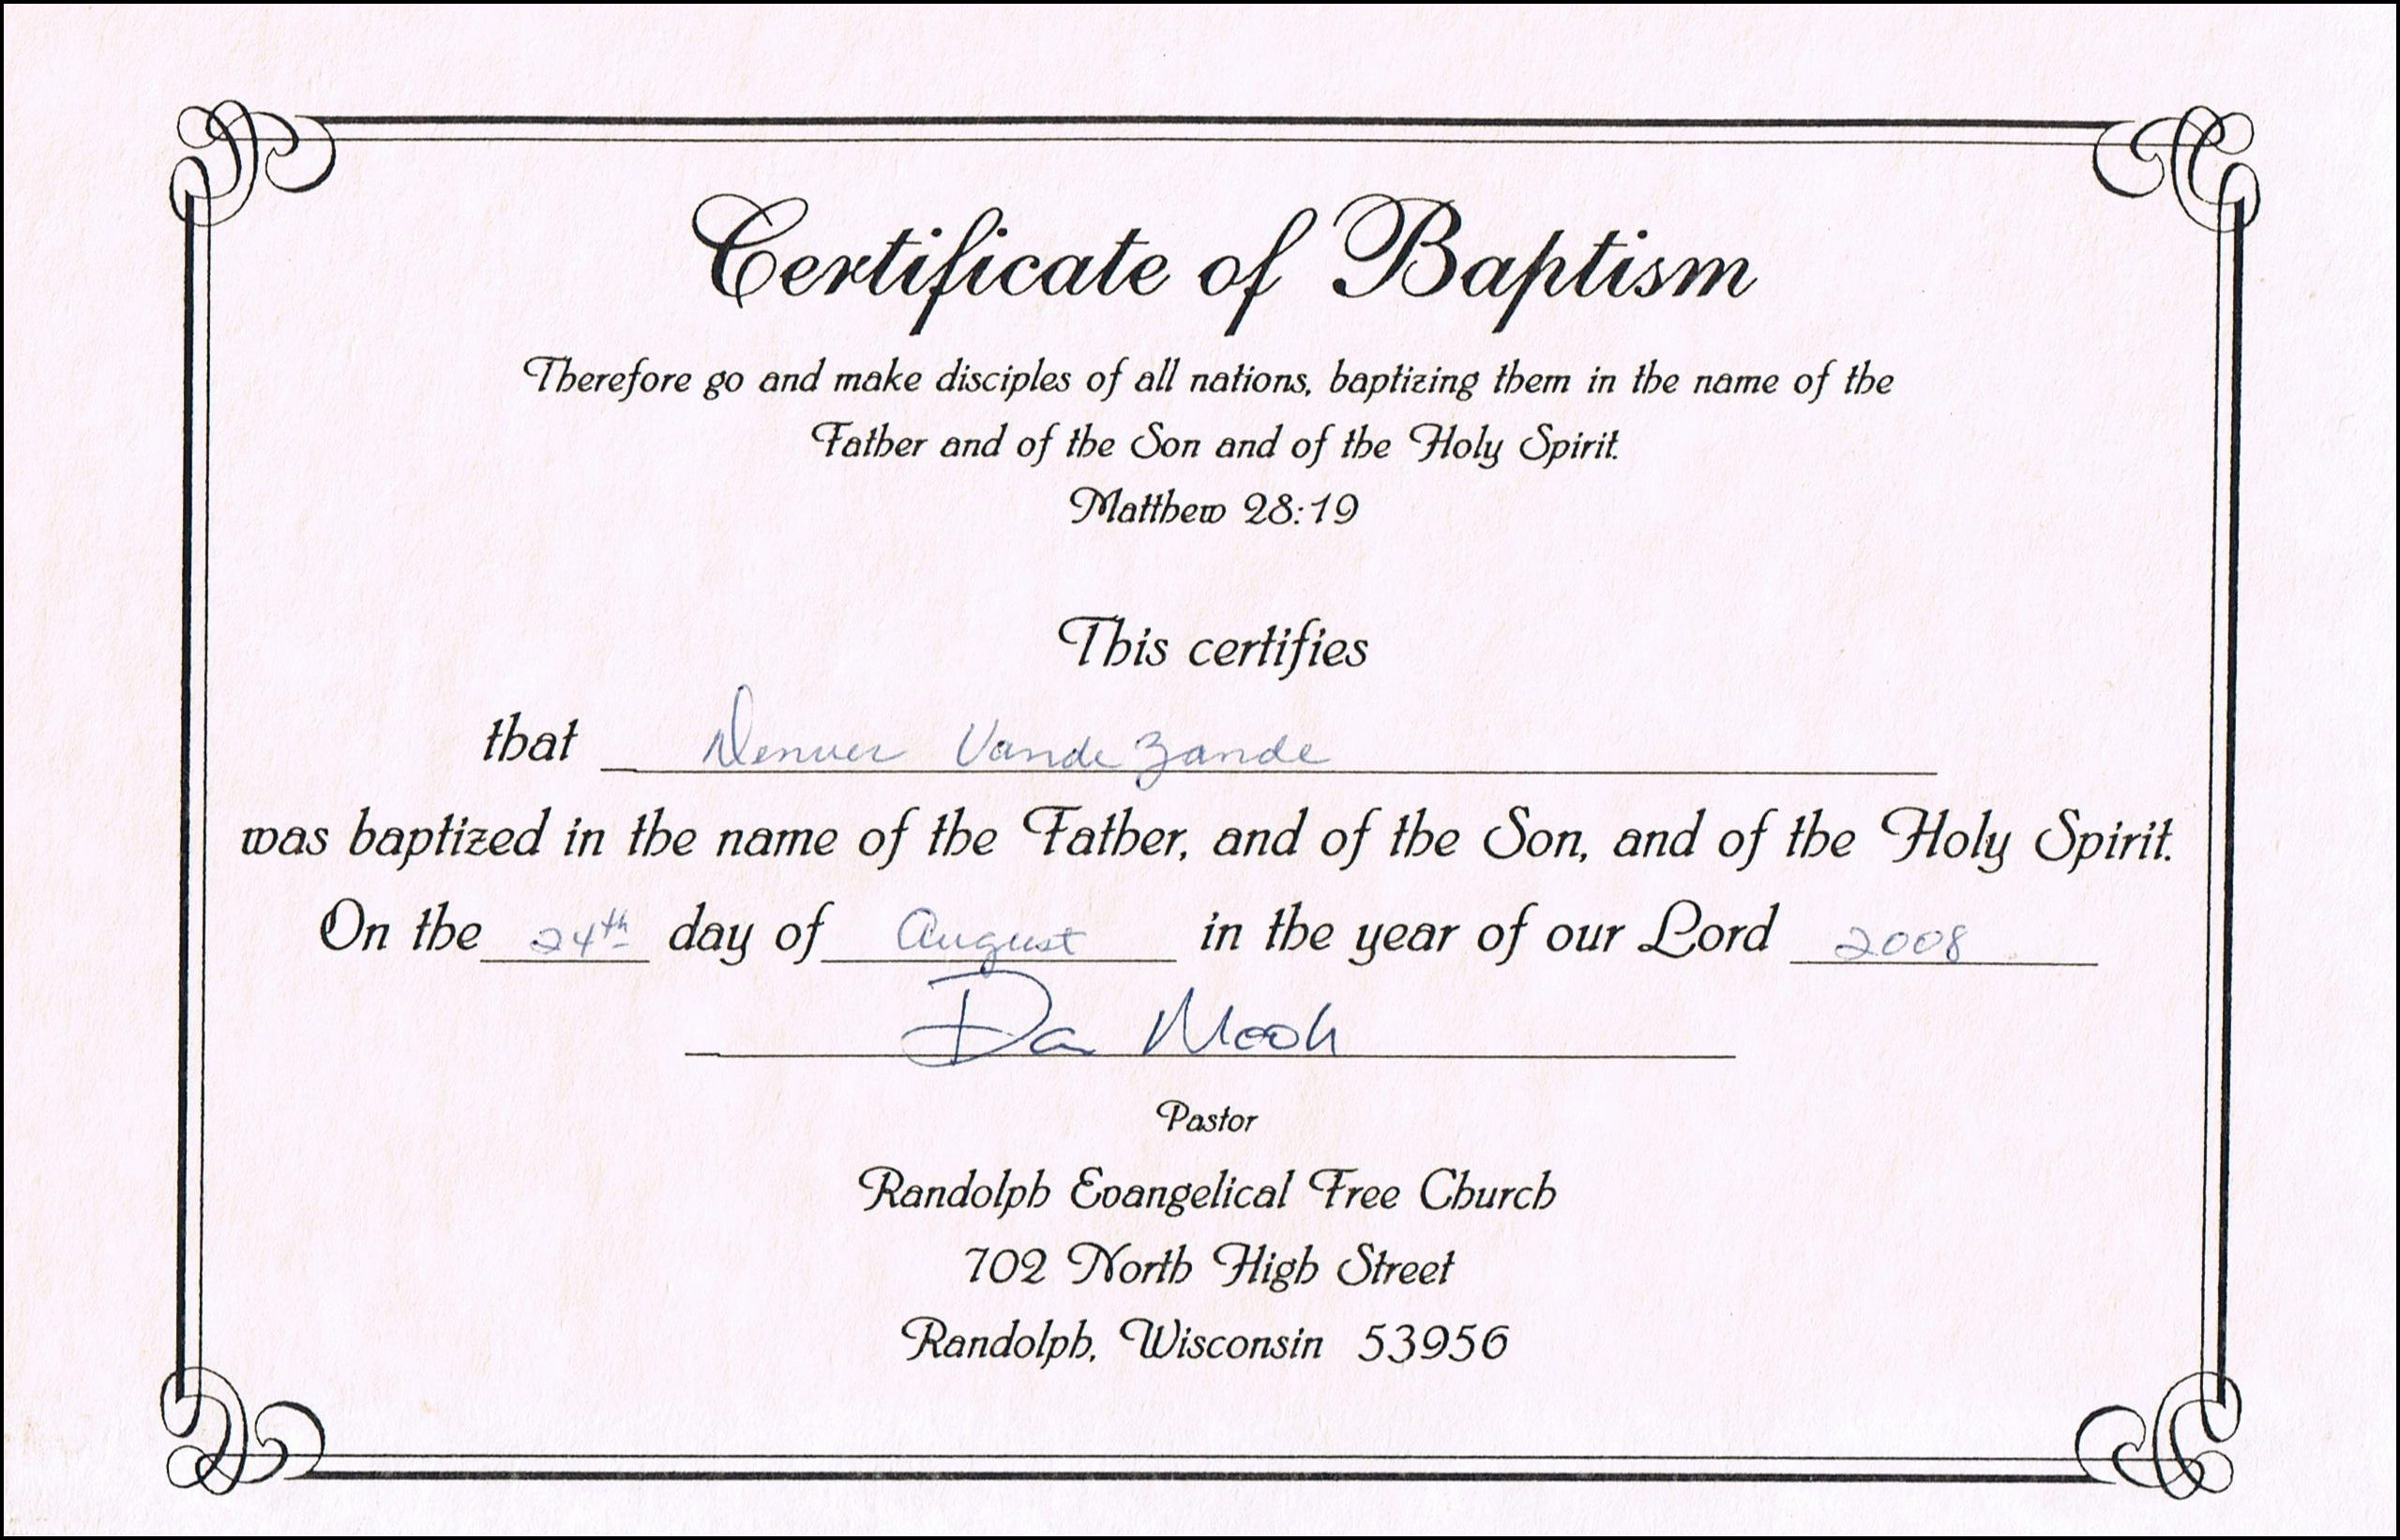 Certificate Of Baptism Word Template Elegant Baptism Certificate Templates for Word